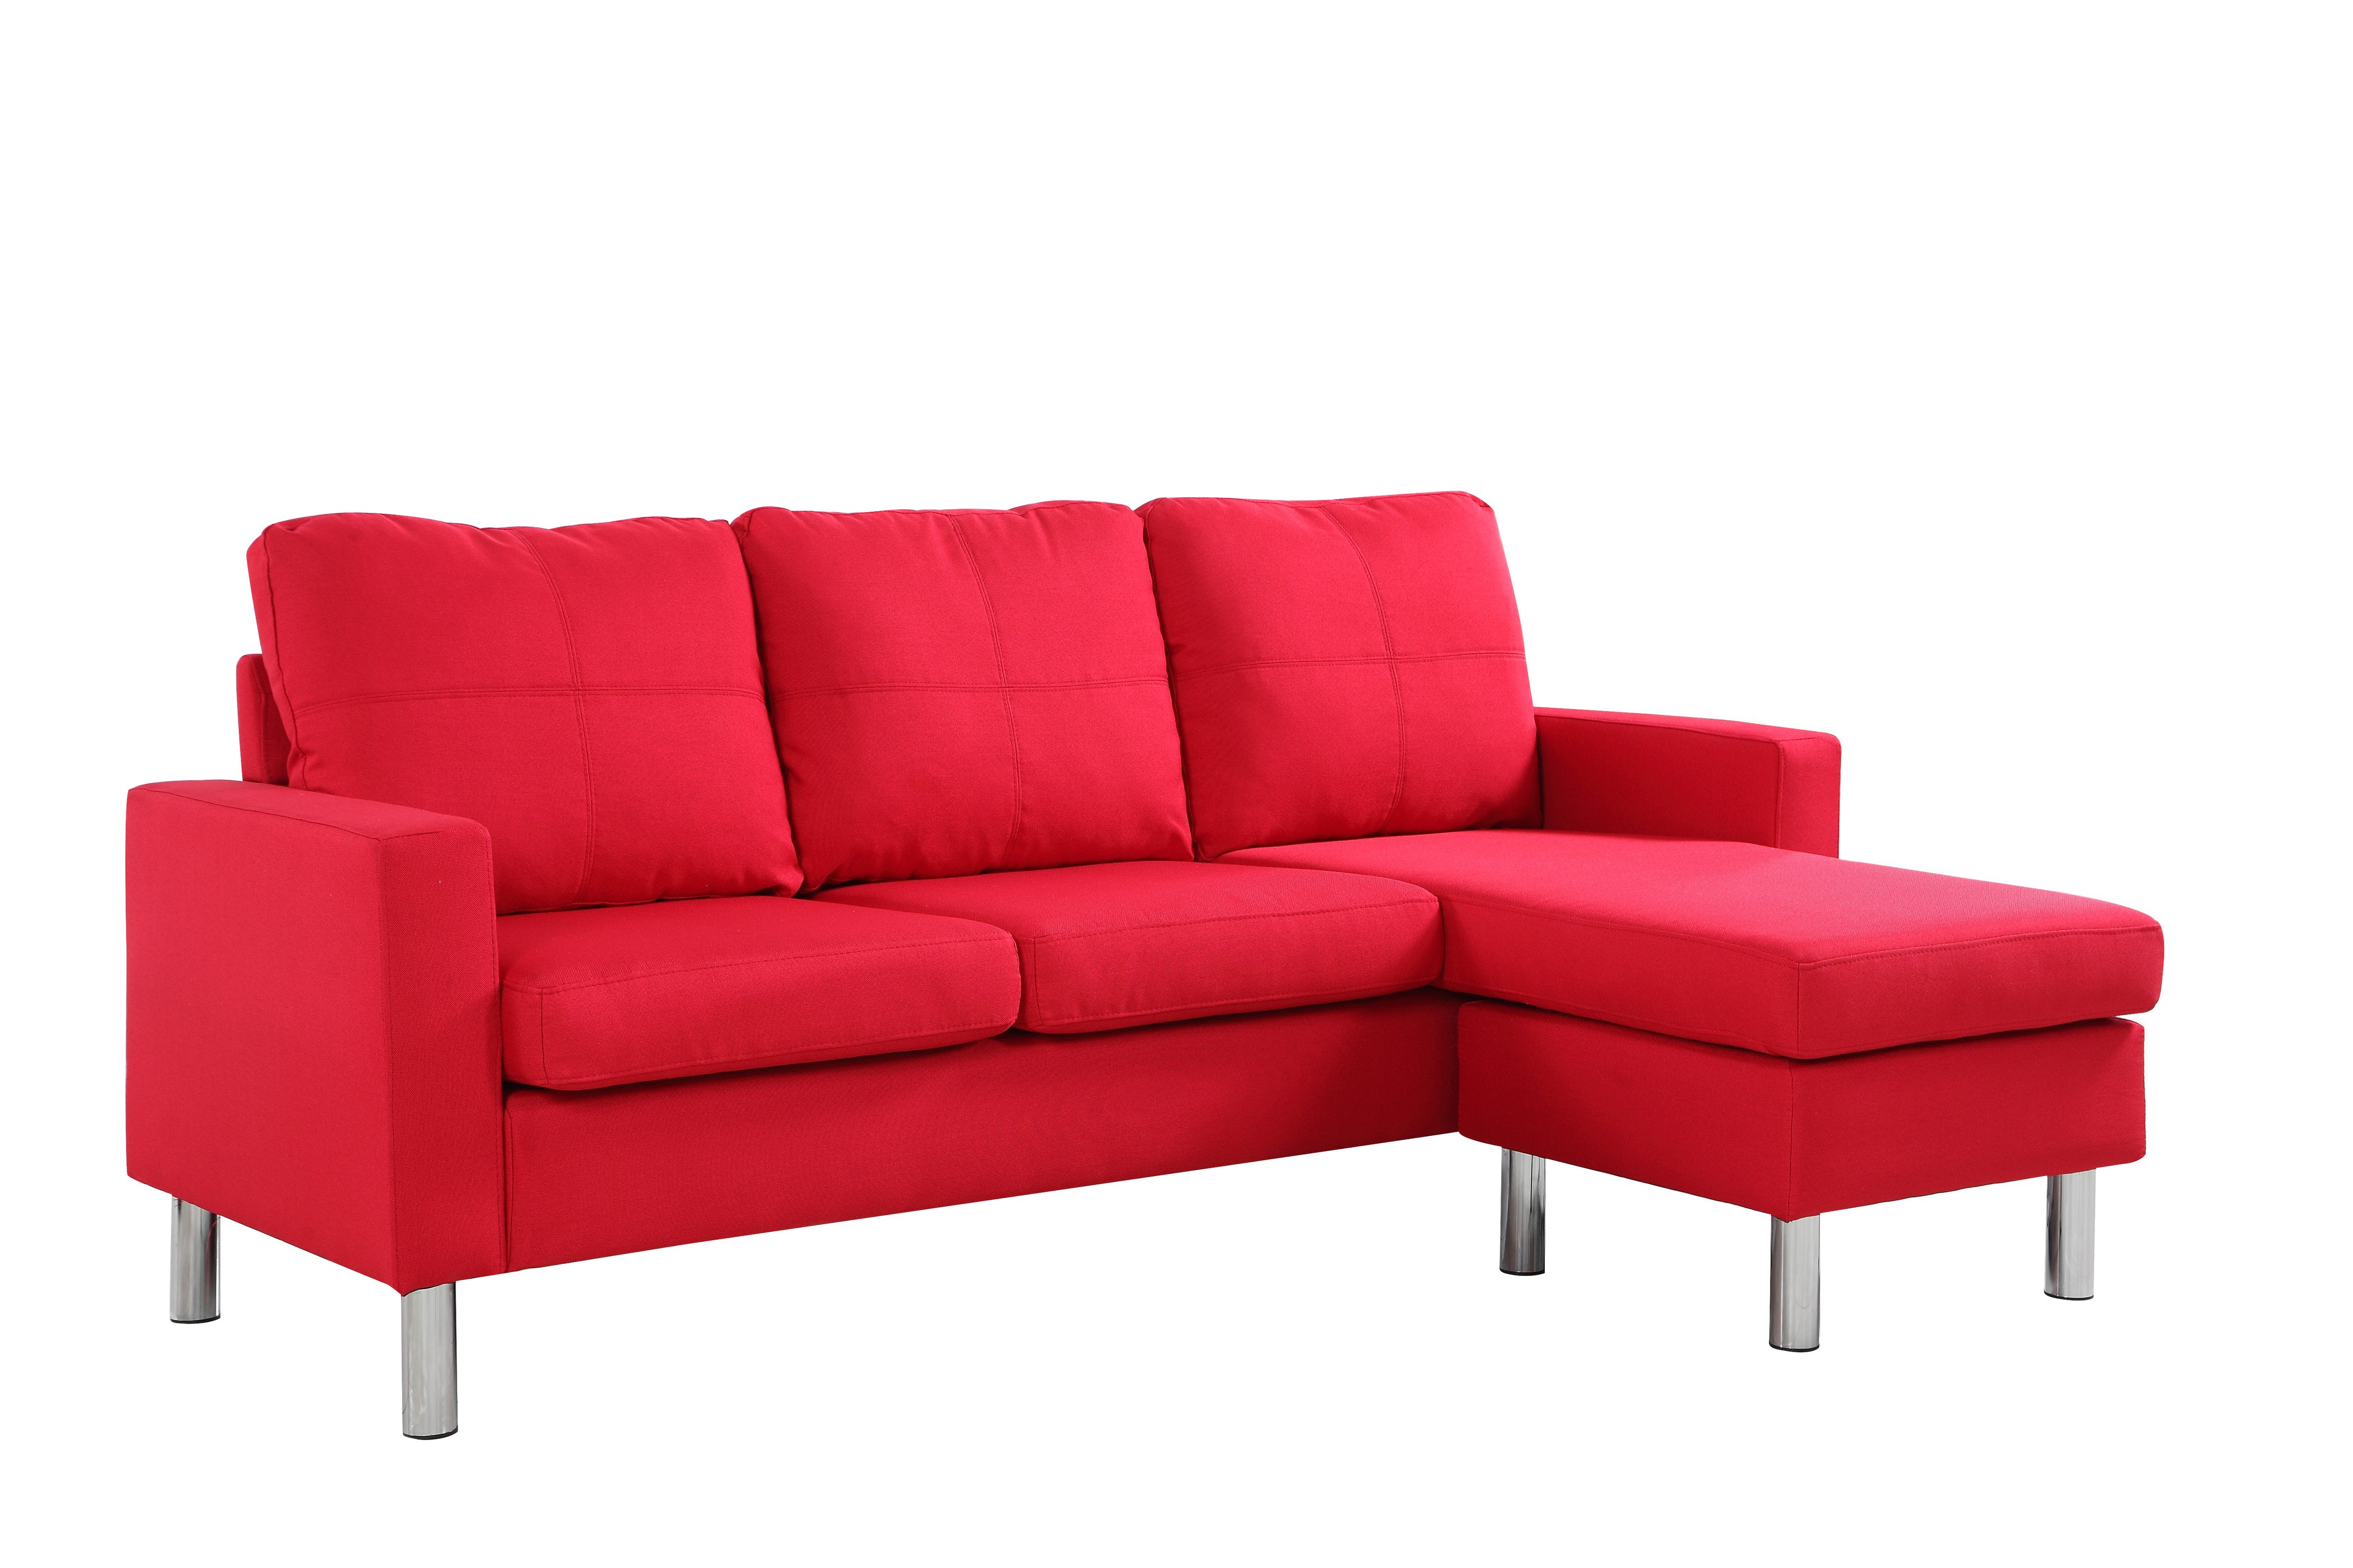 red modern sectional sofa accent chair set small space reversible linen fabric